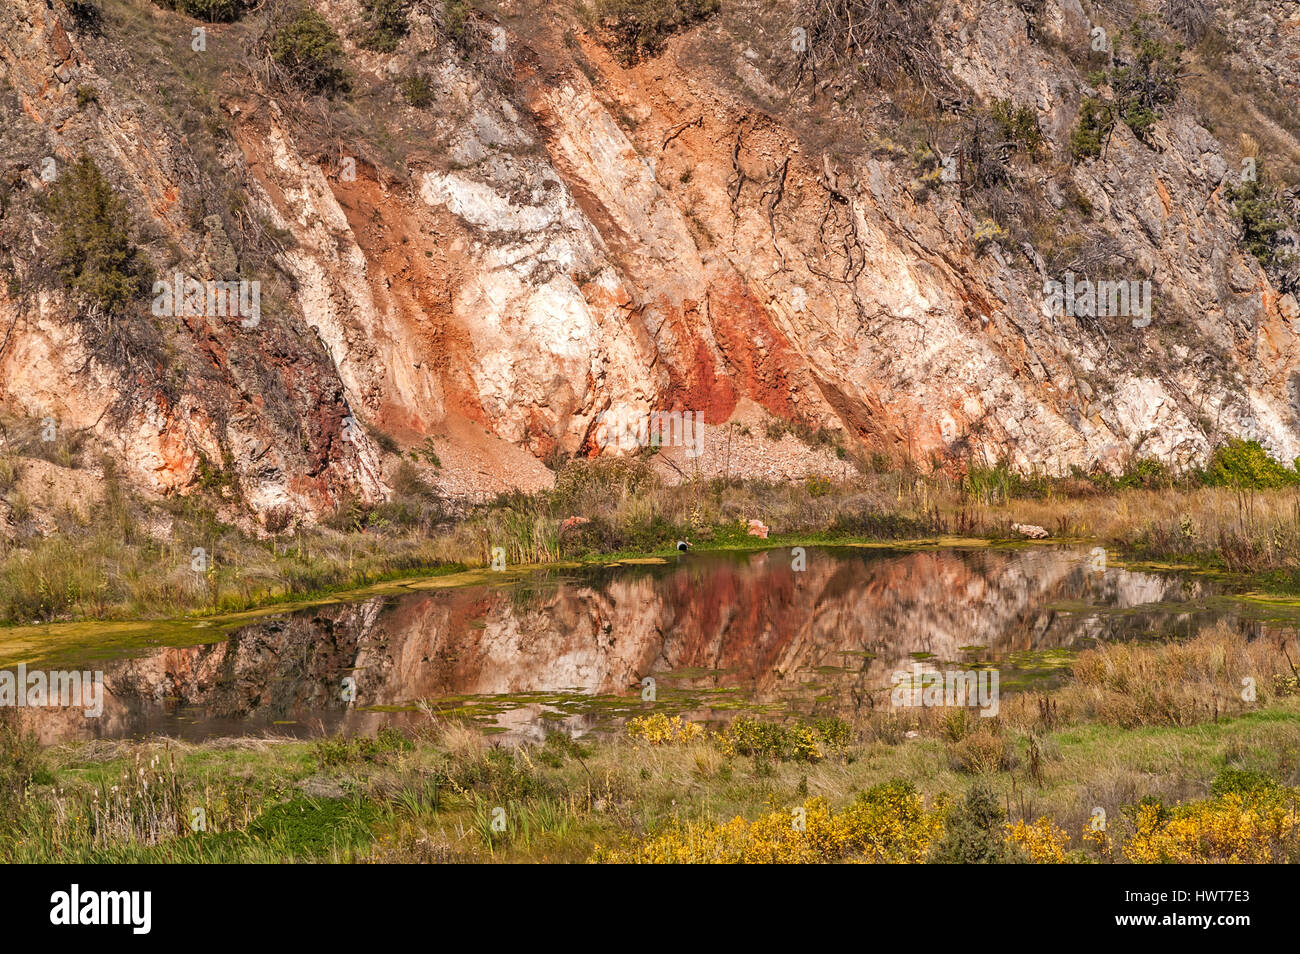 Contrasts abound in this photo of a mountain reflected in a pond. - Stock Image